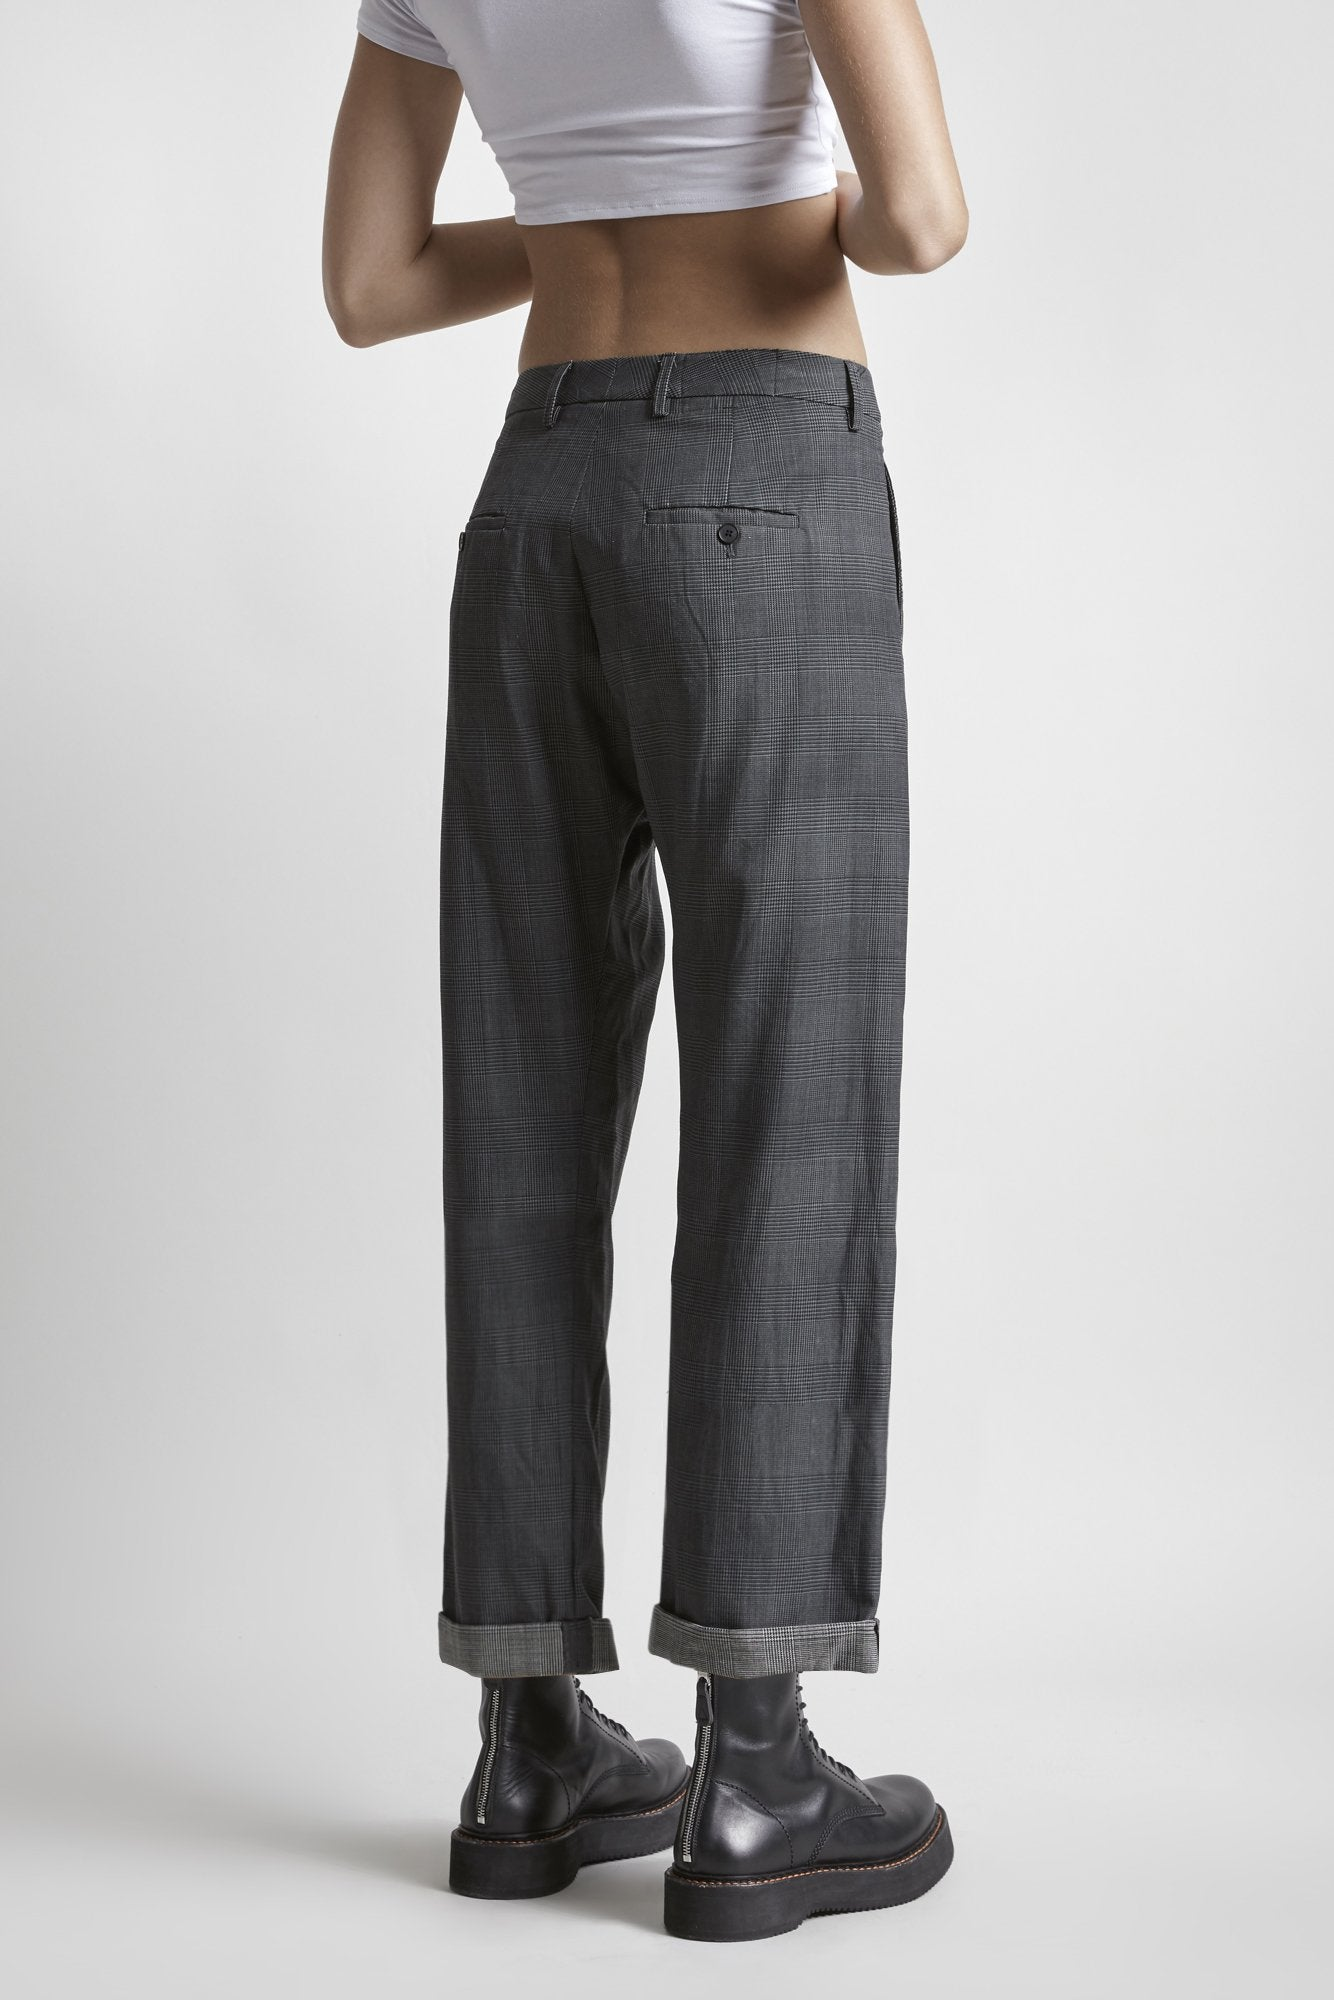 Crossover Trouser - Grey Check